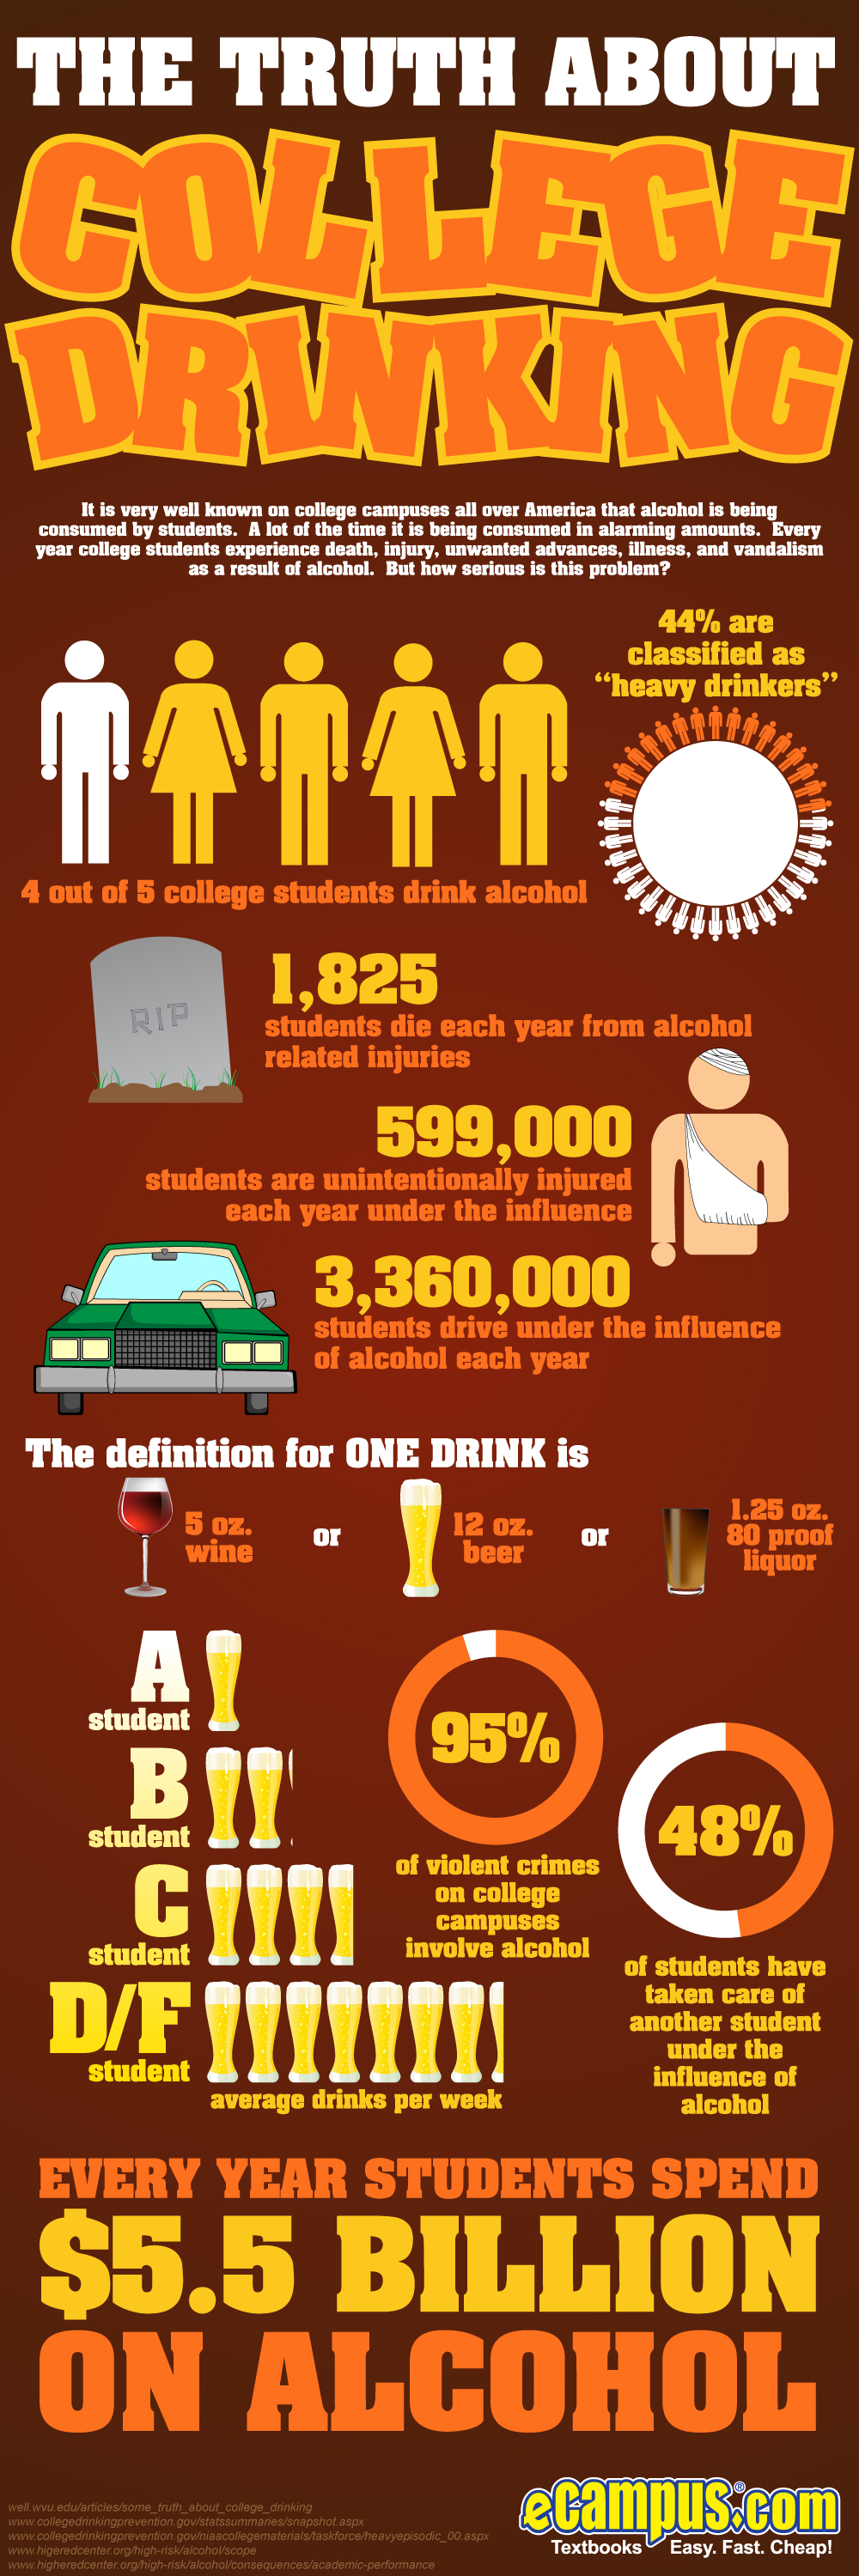 The Dangers Of College Drinking